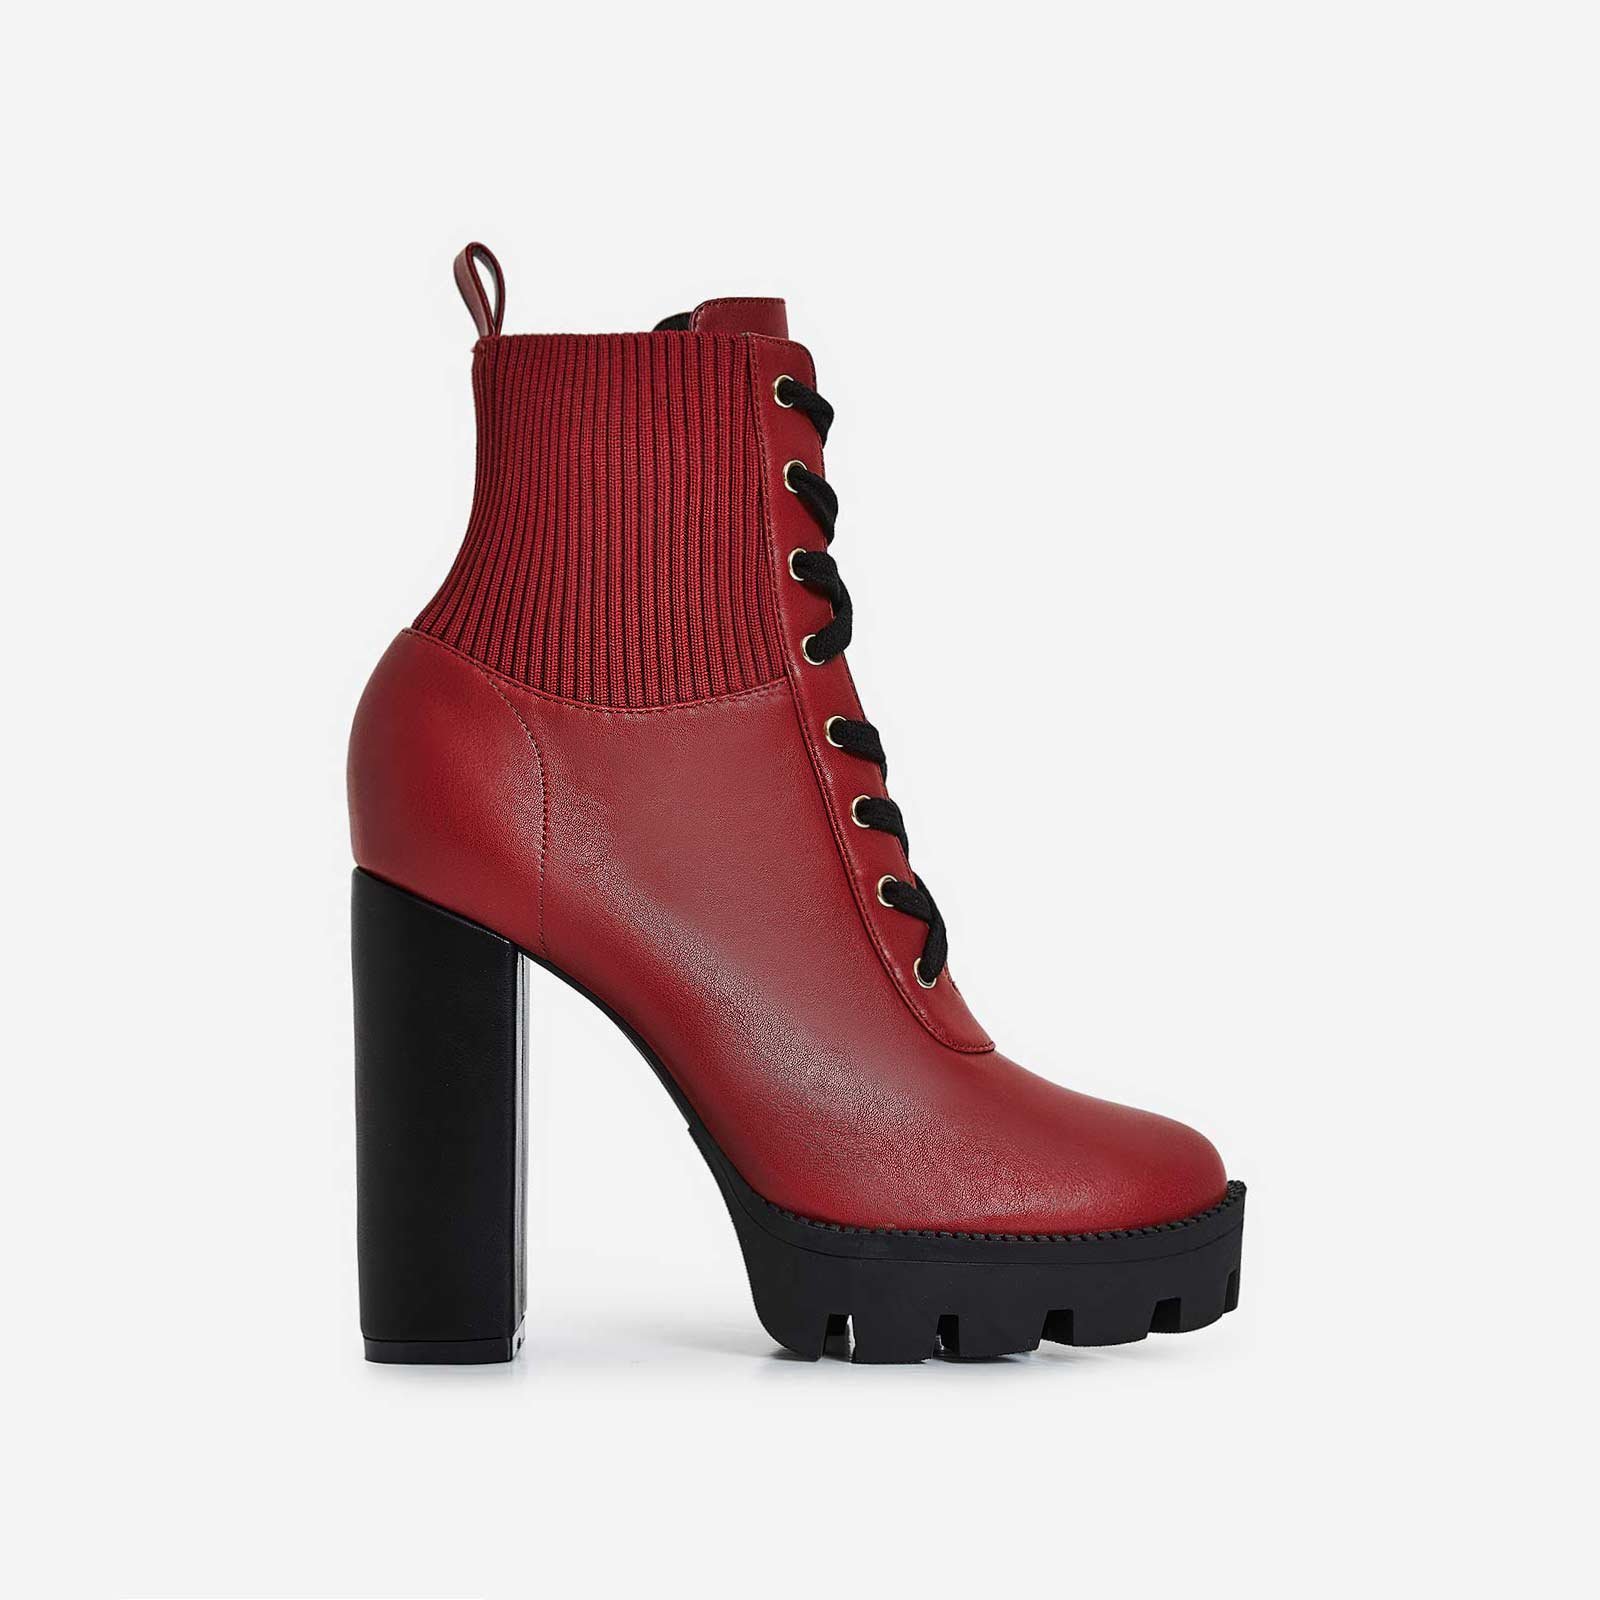 Matt Platform Lace Up Ankle Boot In Maroon Faux Leather